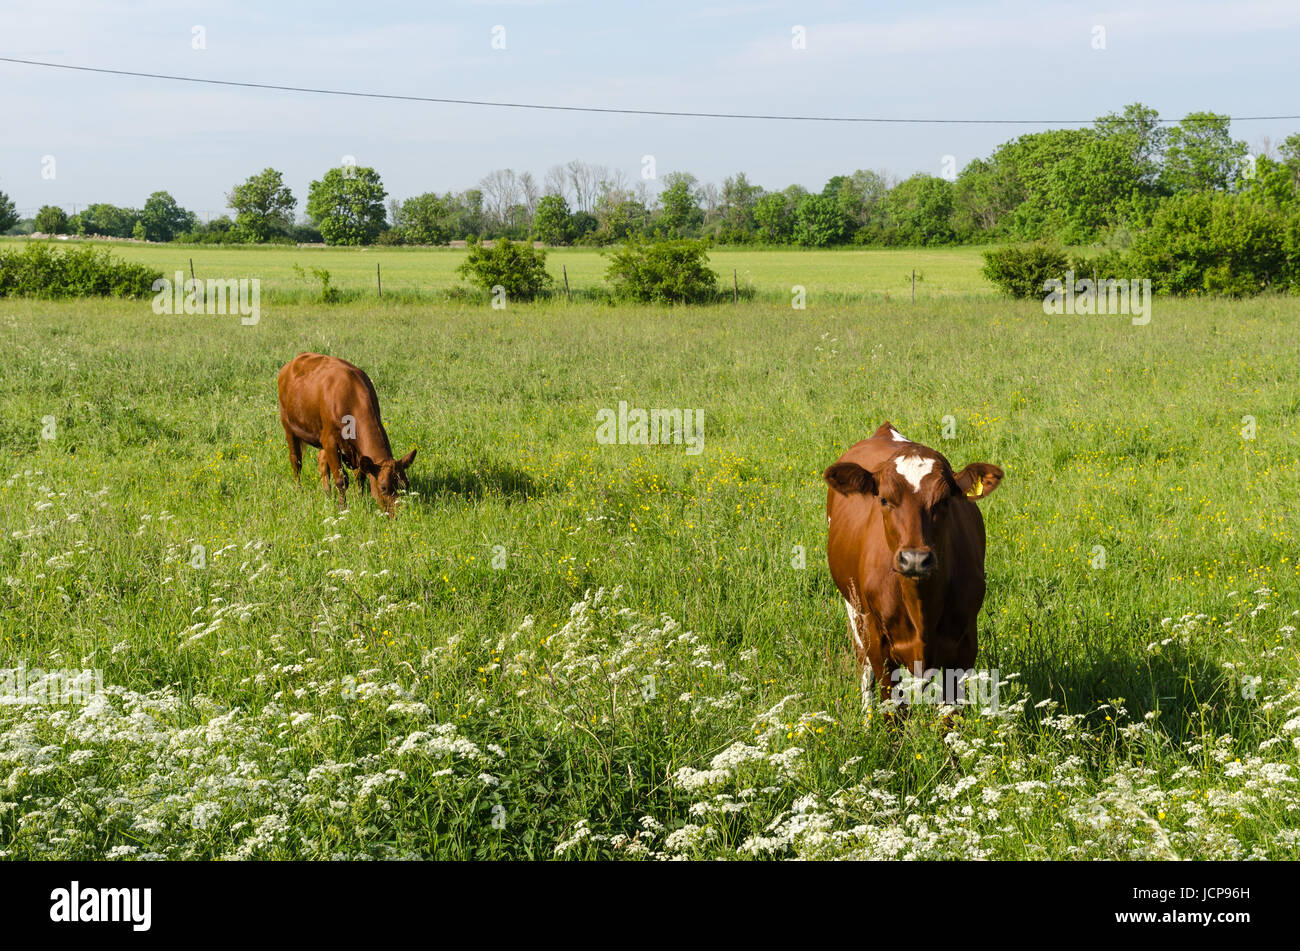 Swedish countryside summer scene with two grazing young cows - Stock Image